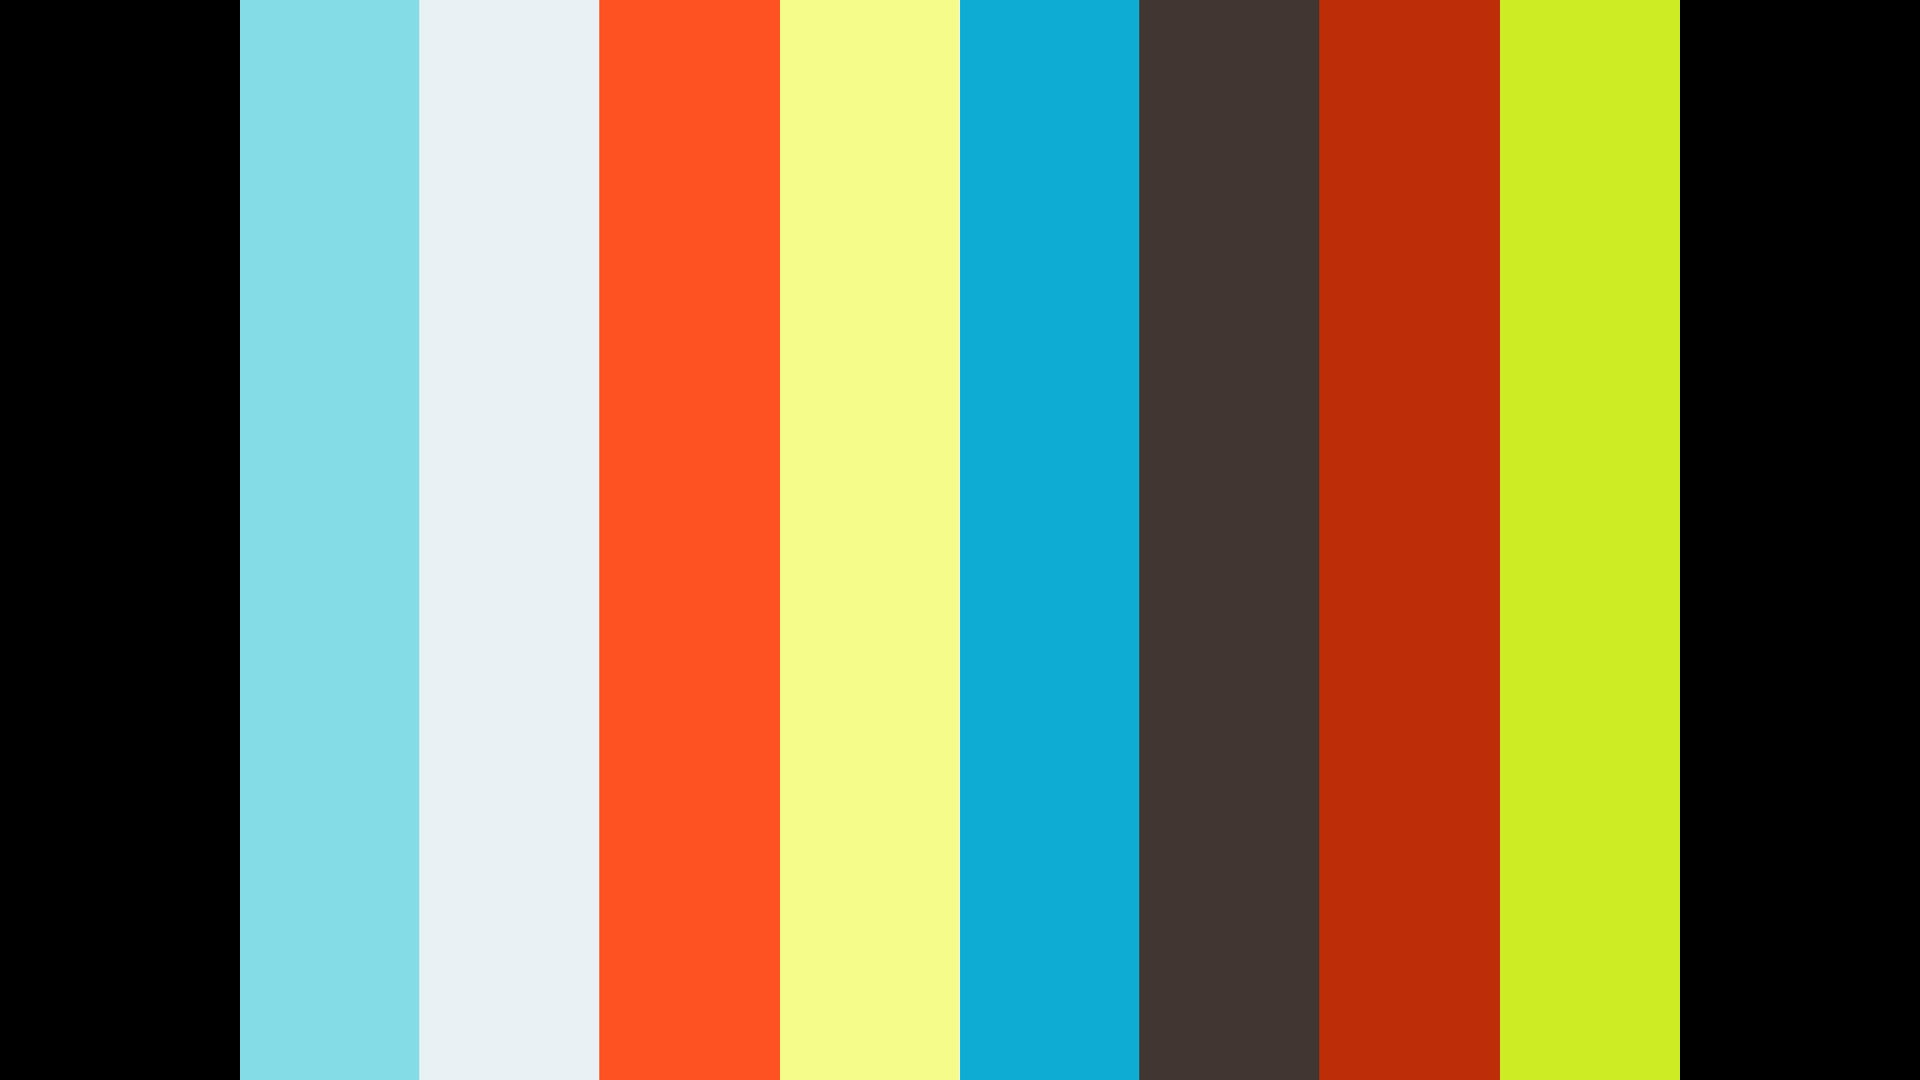 FashionLab New Official Video - FRENCH subtitles